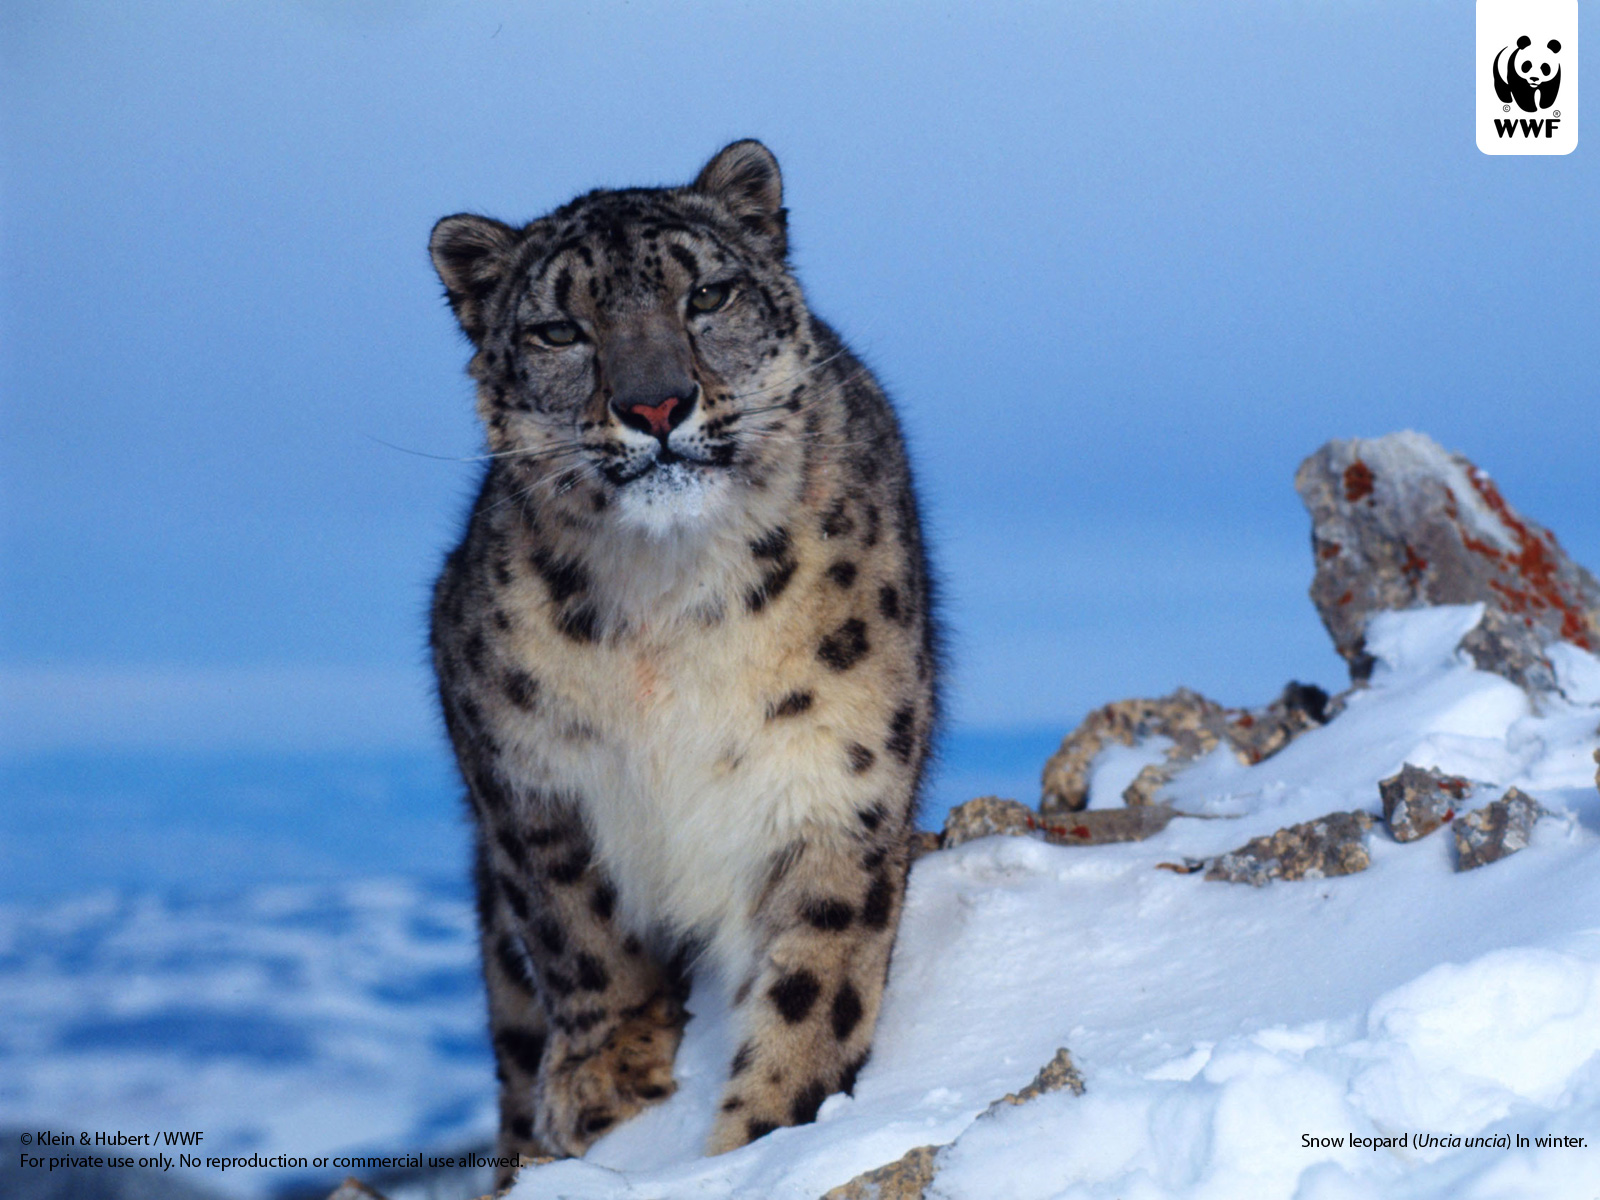 Snow leopard (Uncia uncia) in winter.